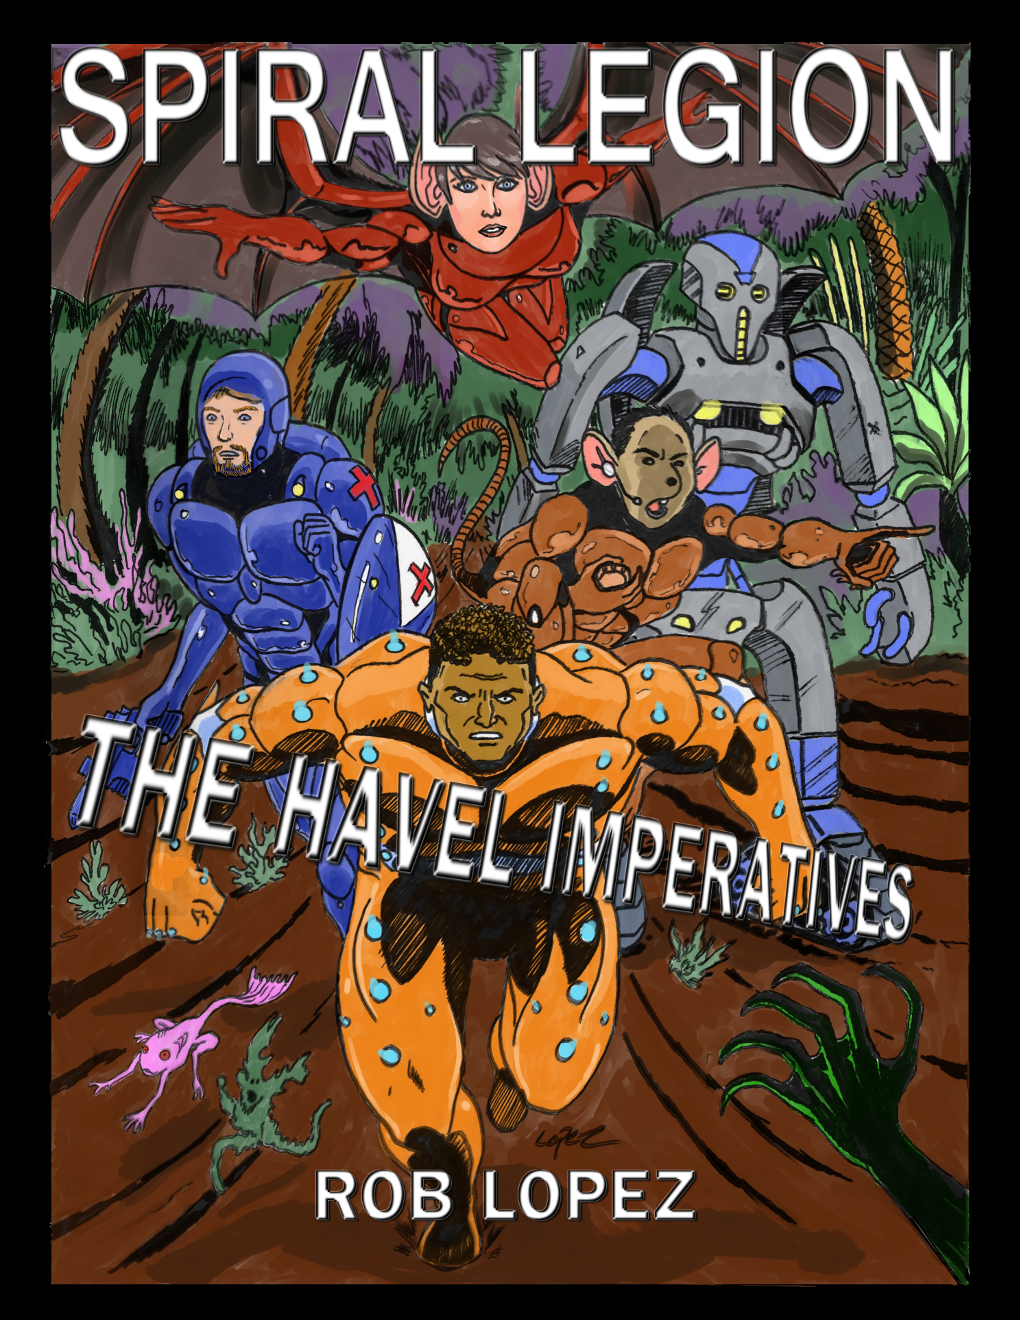 Spiral Legion The Havel Imperatives by Rob Lopez Now Available on Kindle